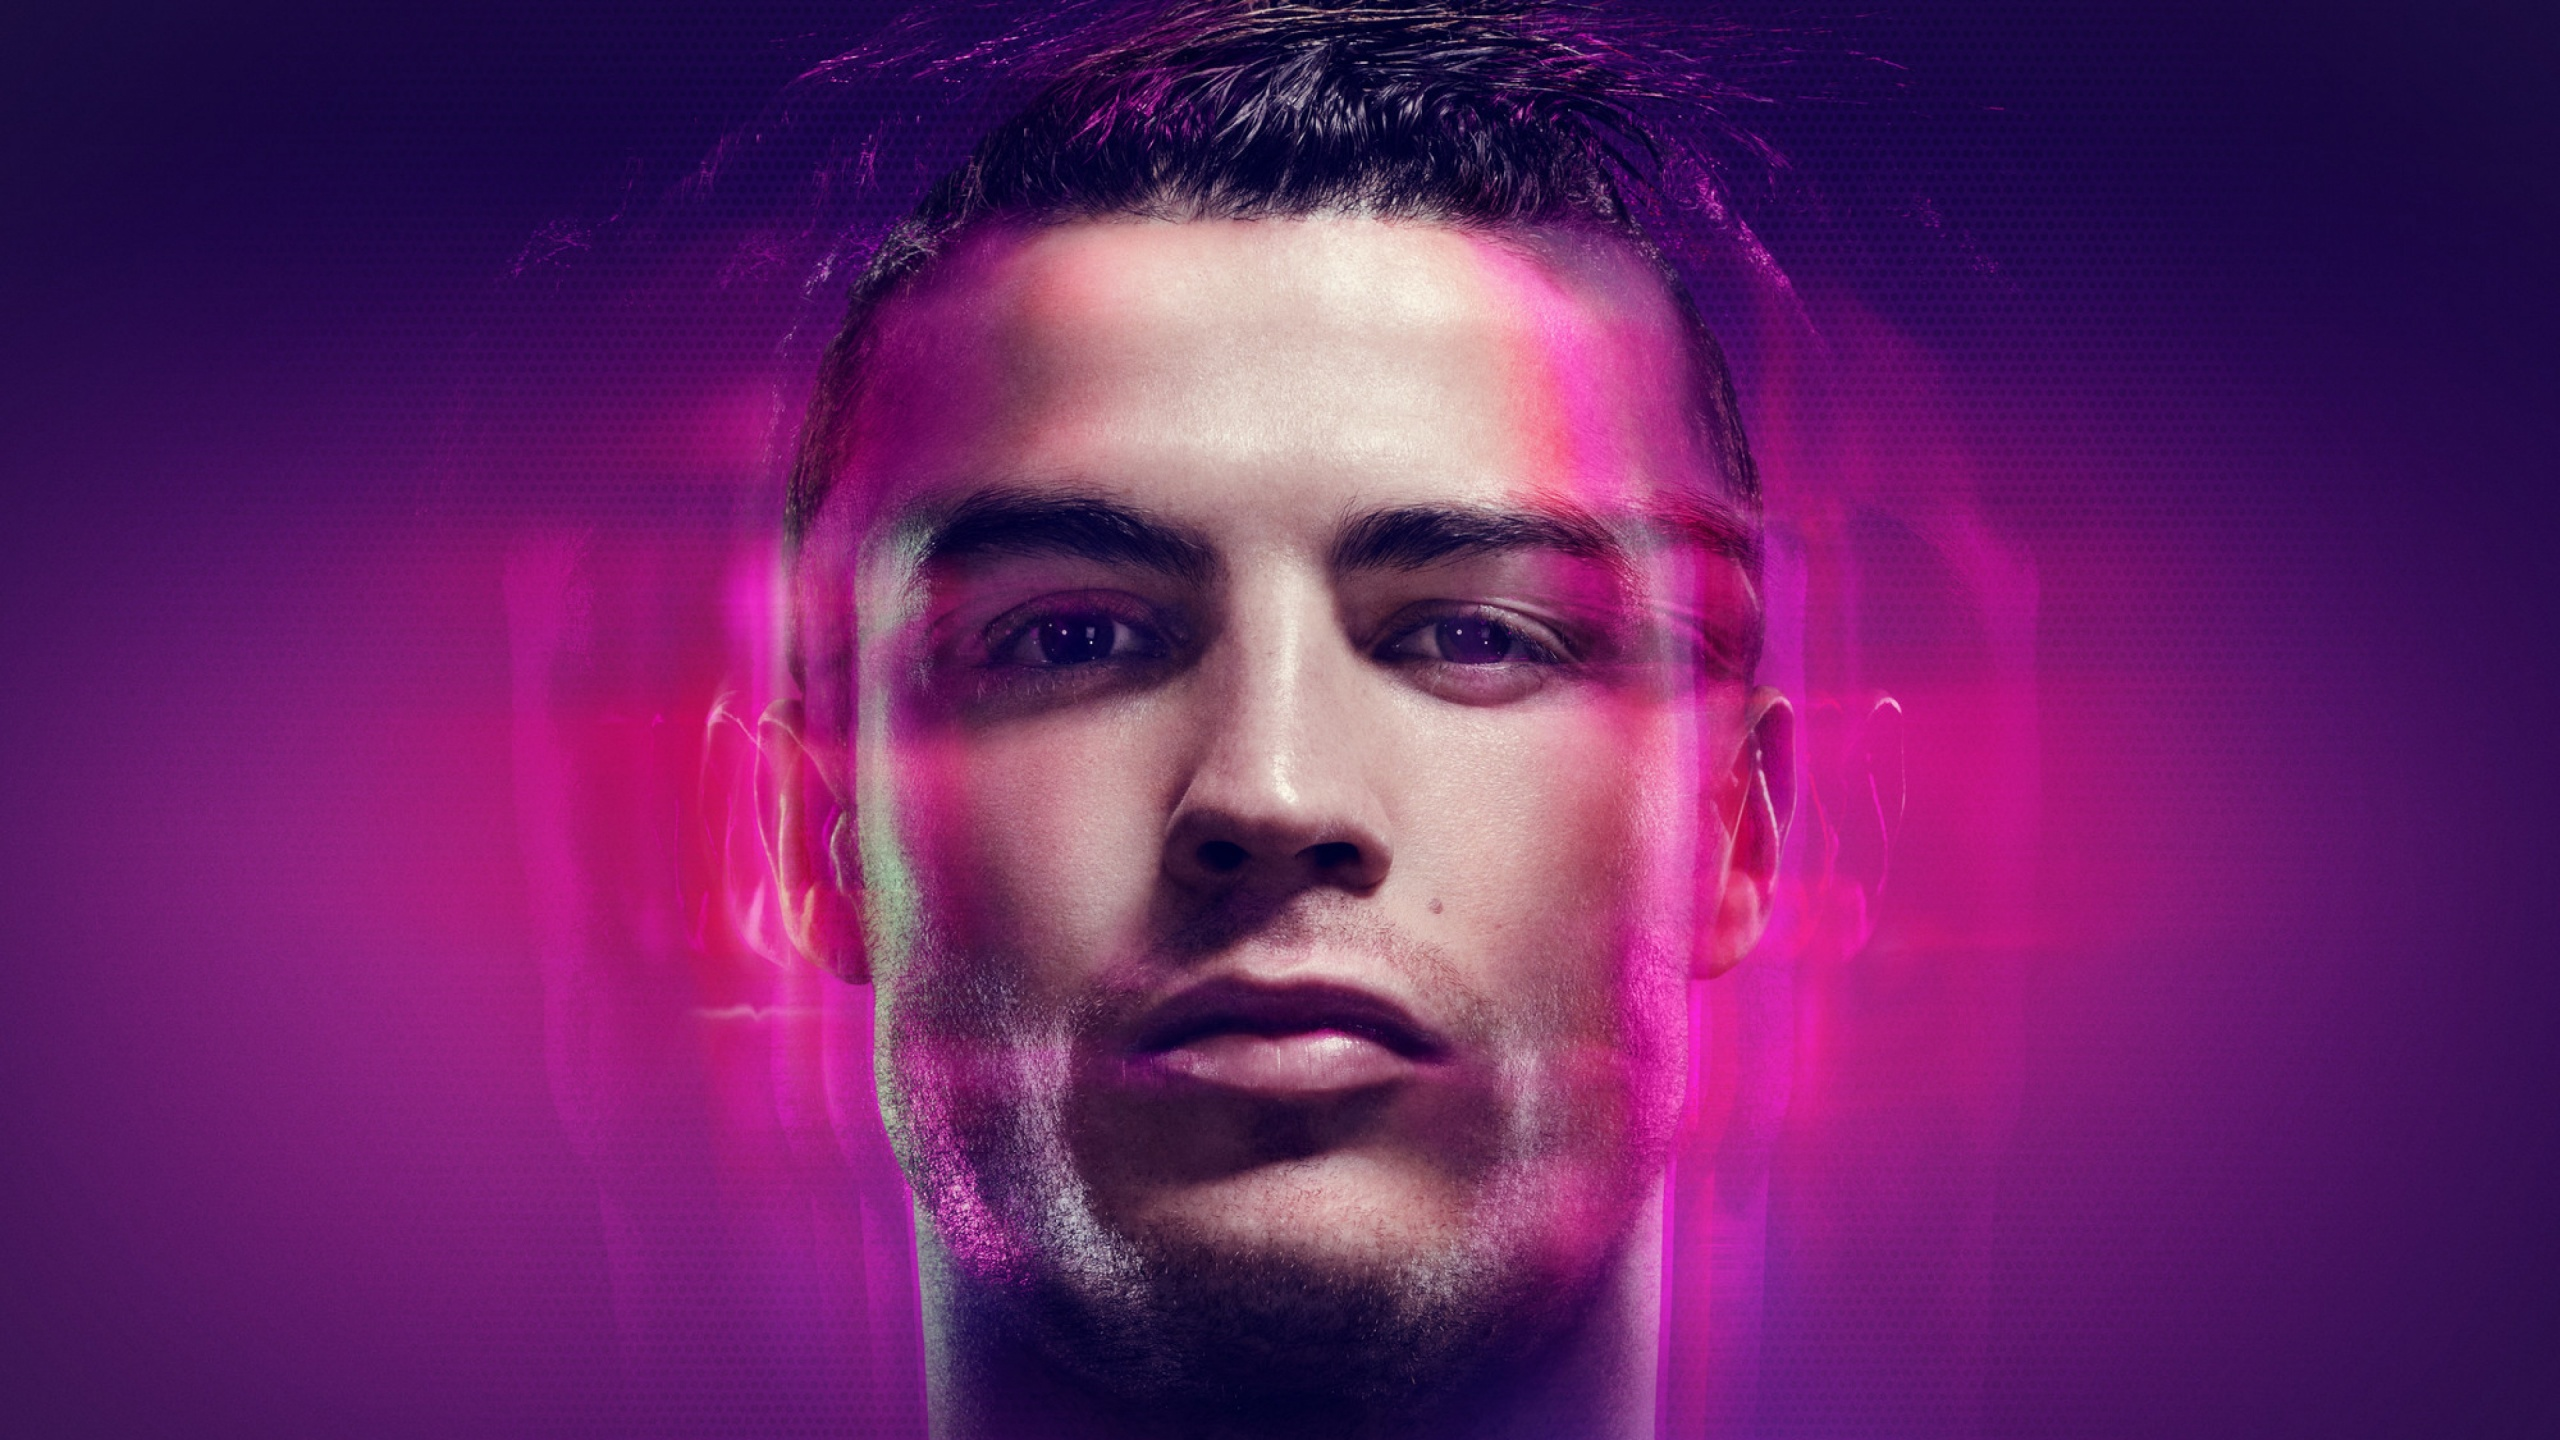 Cristiano Ronaldo 4k Wallpapers In Jpg Format For Free Download